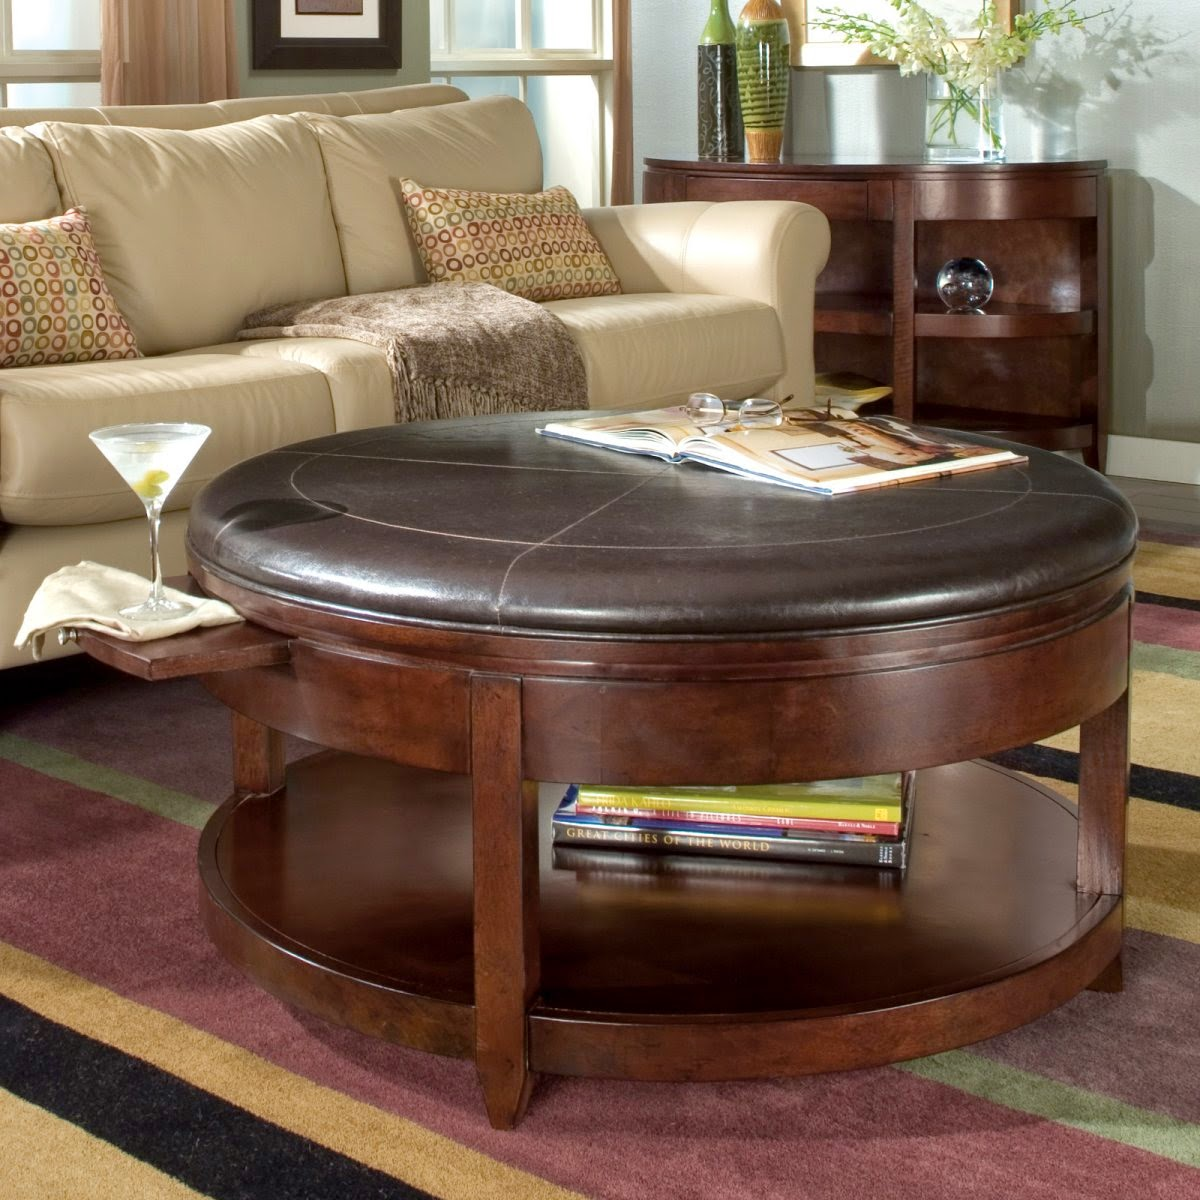 - Home Design Inspiration And Wedding Ideas: Upholstered Ottoman